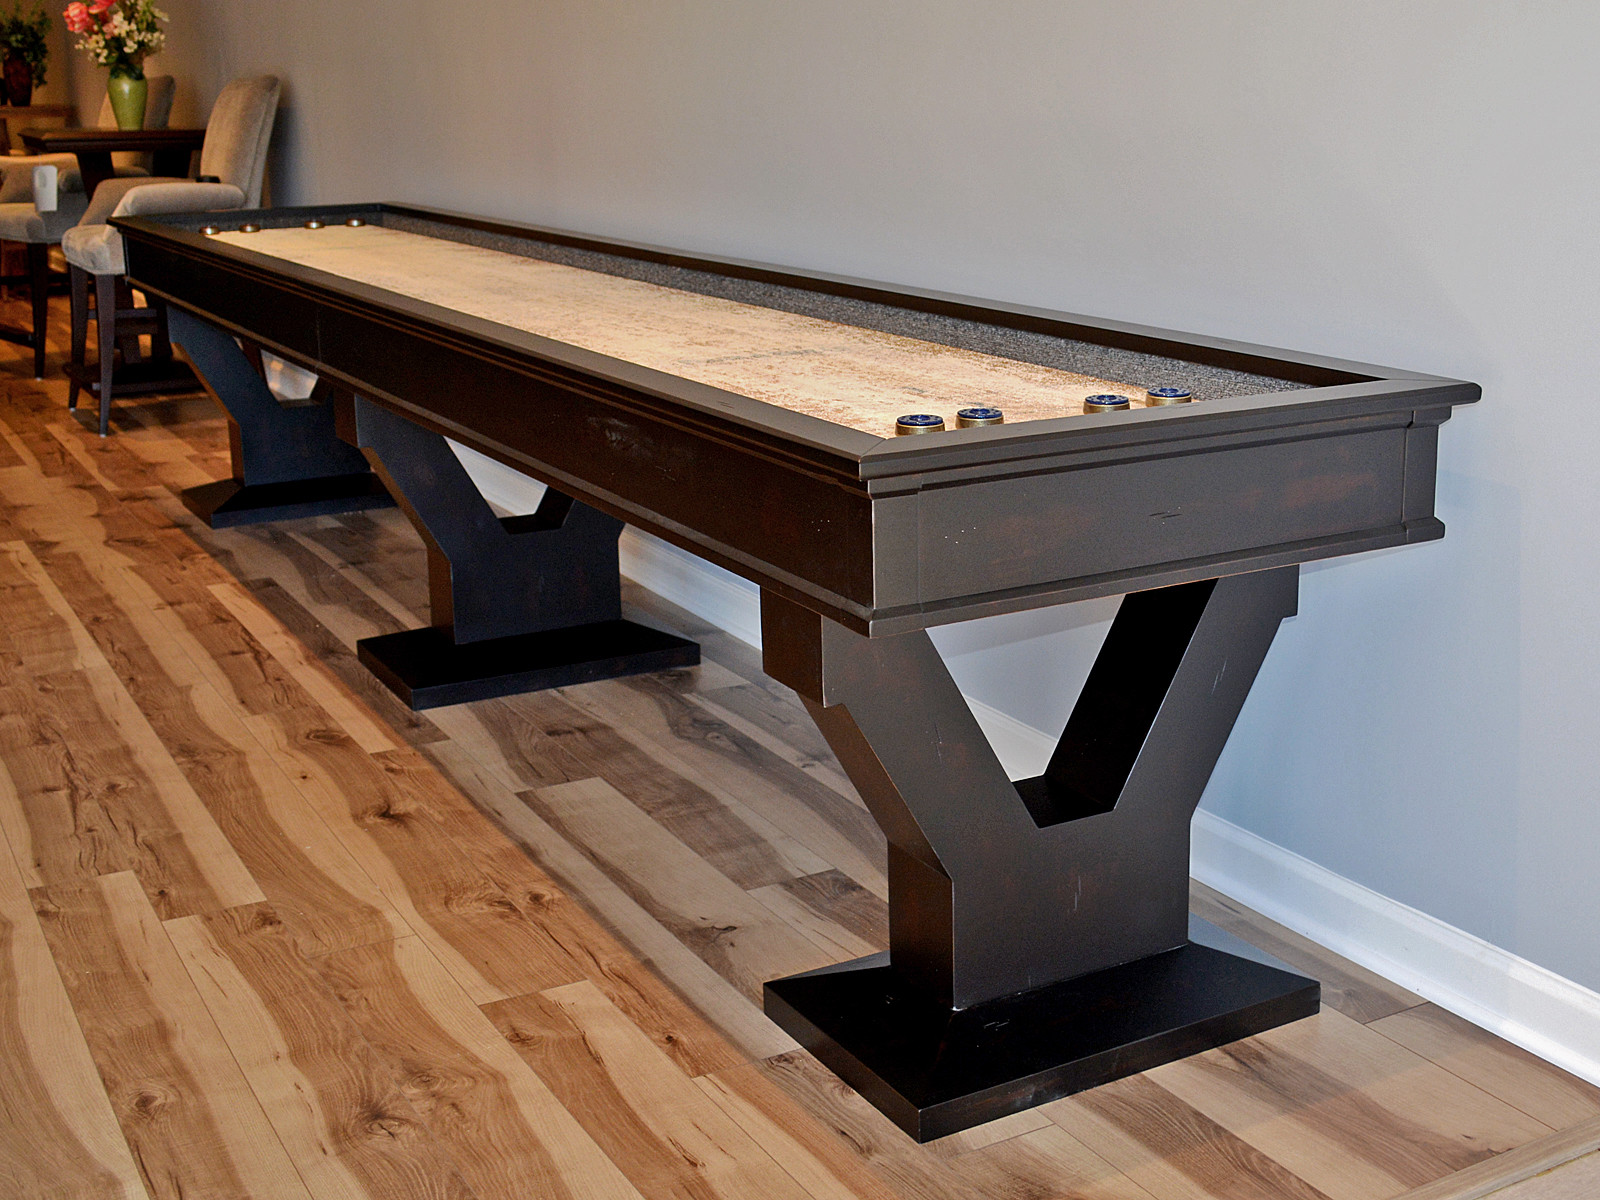 Where to Buy Shuffleboard Table | Regulation Shuffleboard | Shuffleboard Table